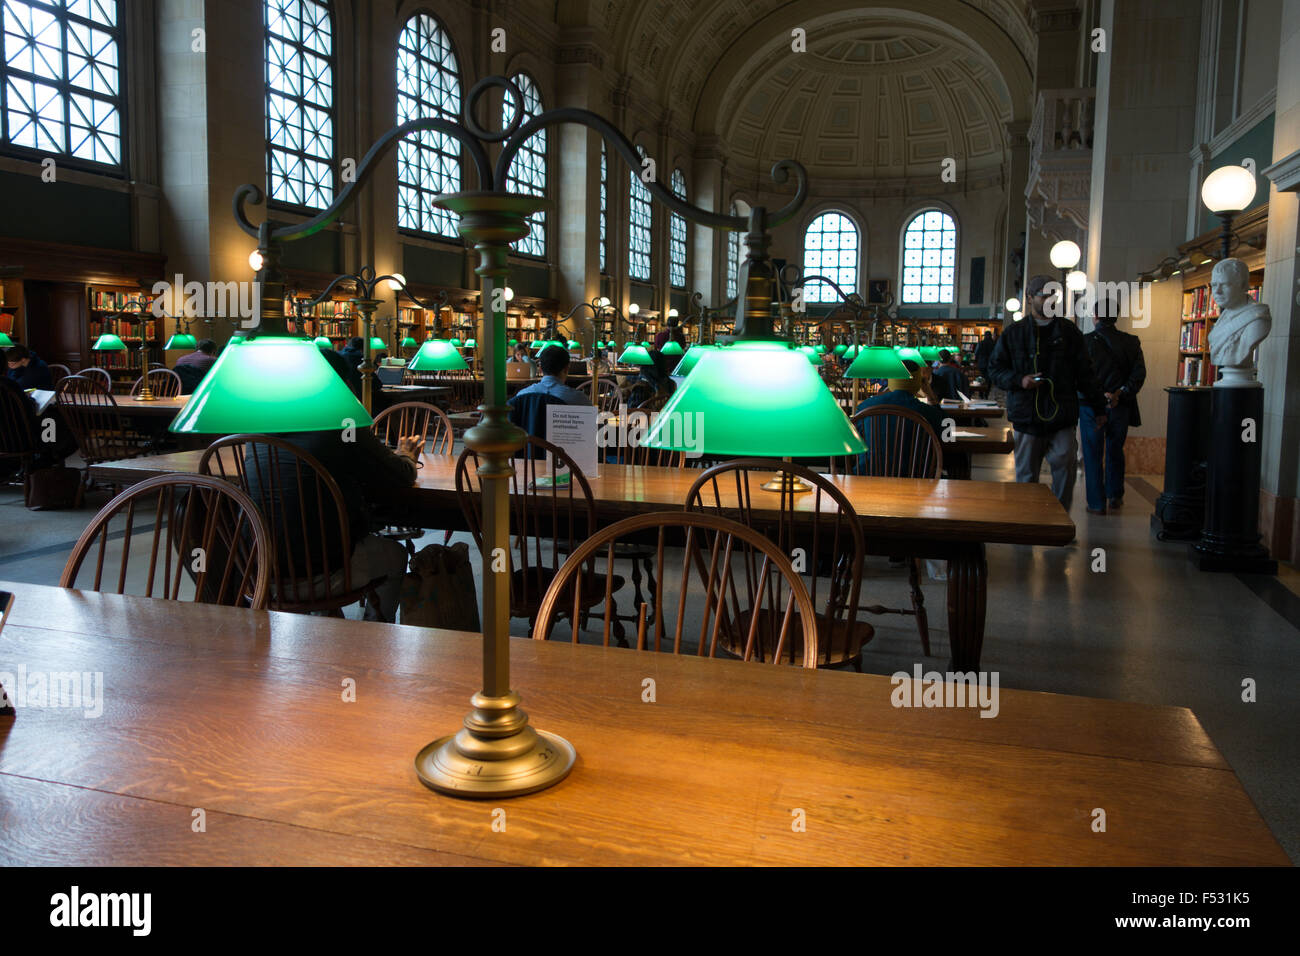 Genial Boston Library Desk Lamp